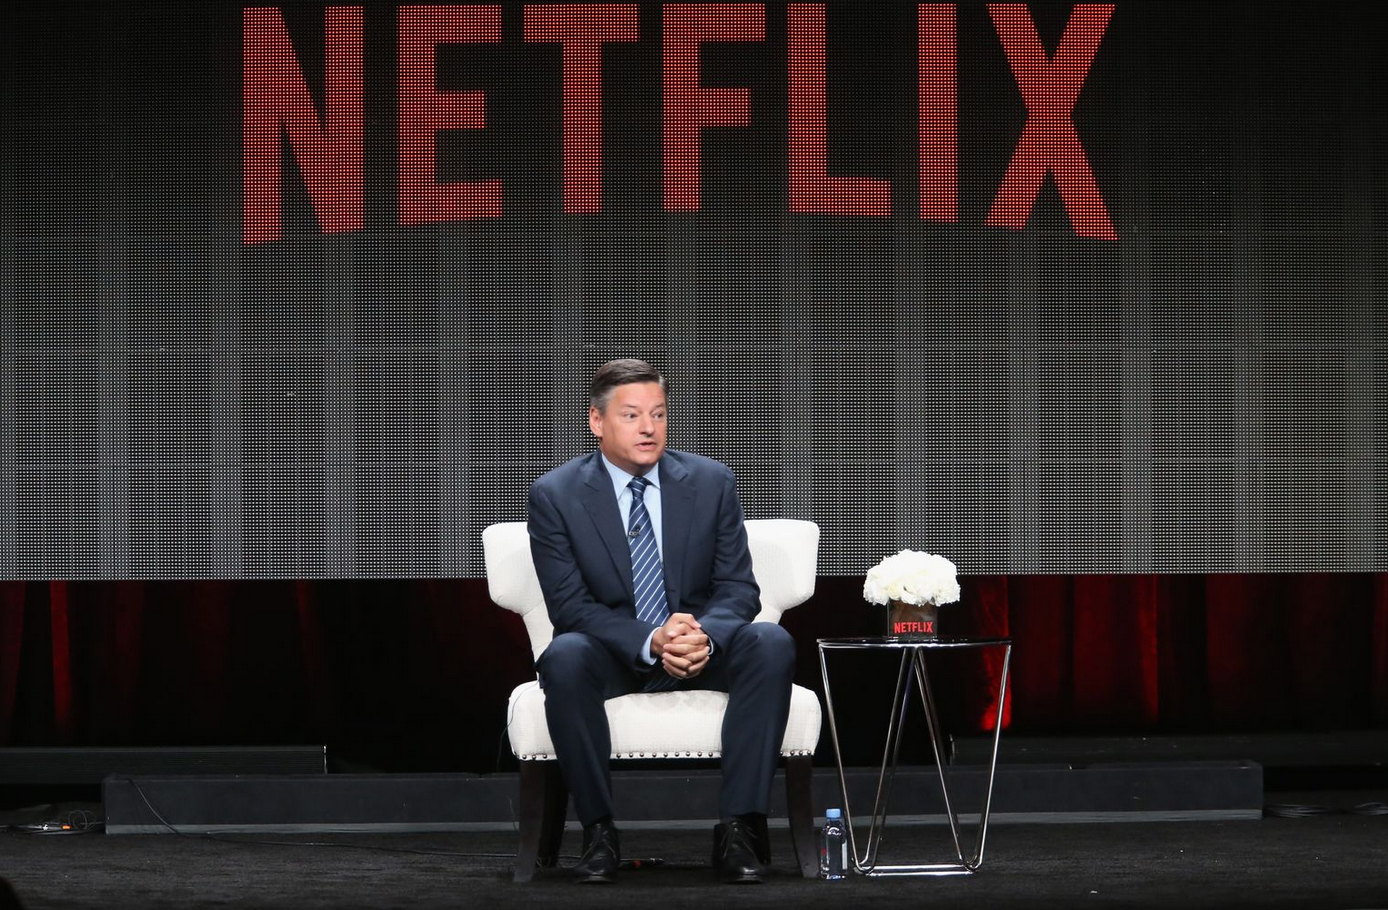 Ted Sarandos, Chief Content Officer for Netflix, speaks at the Television Critics Association summer press tour in 2015.